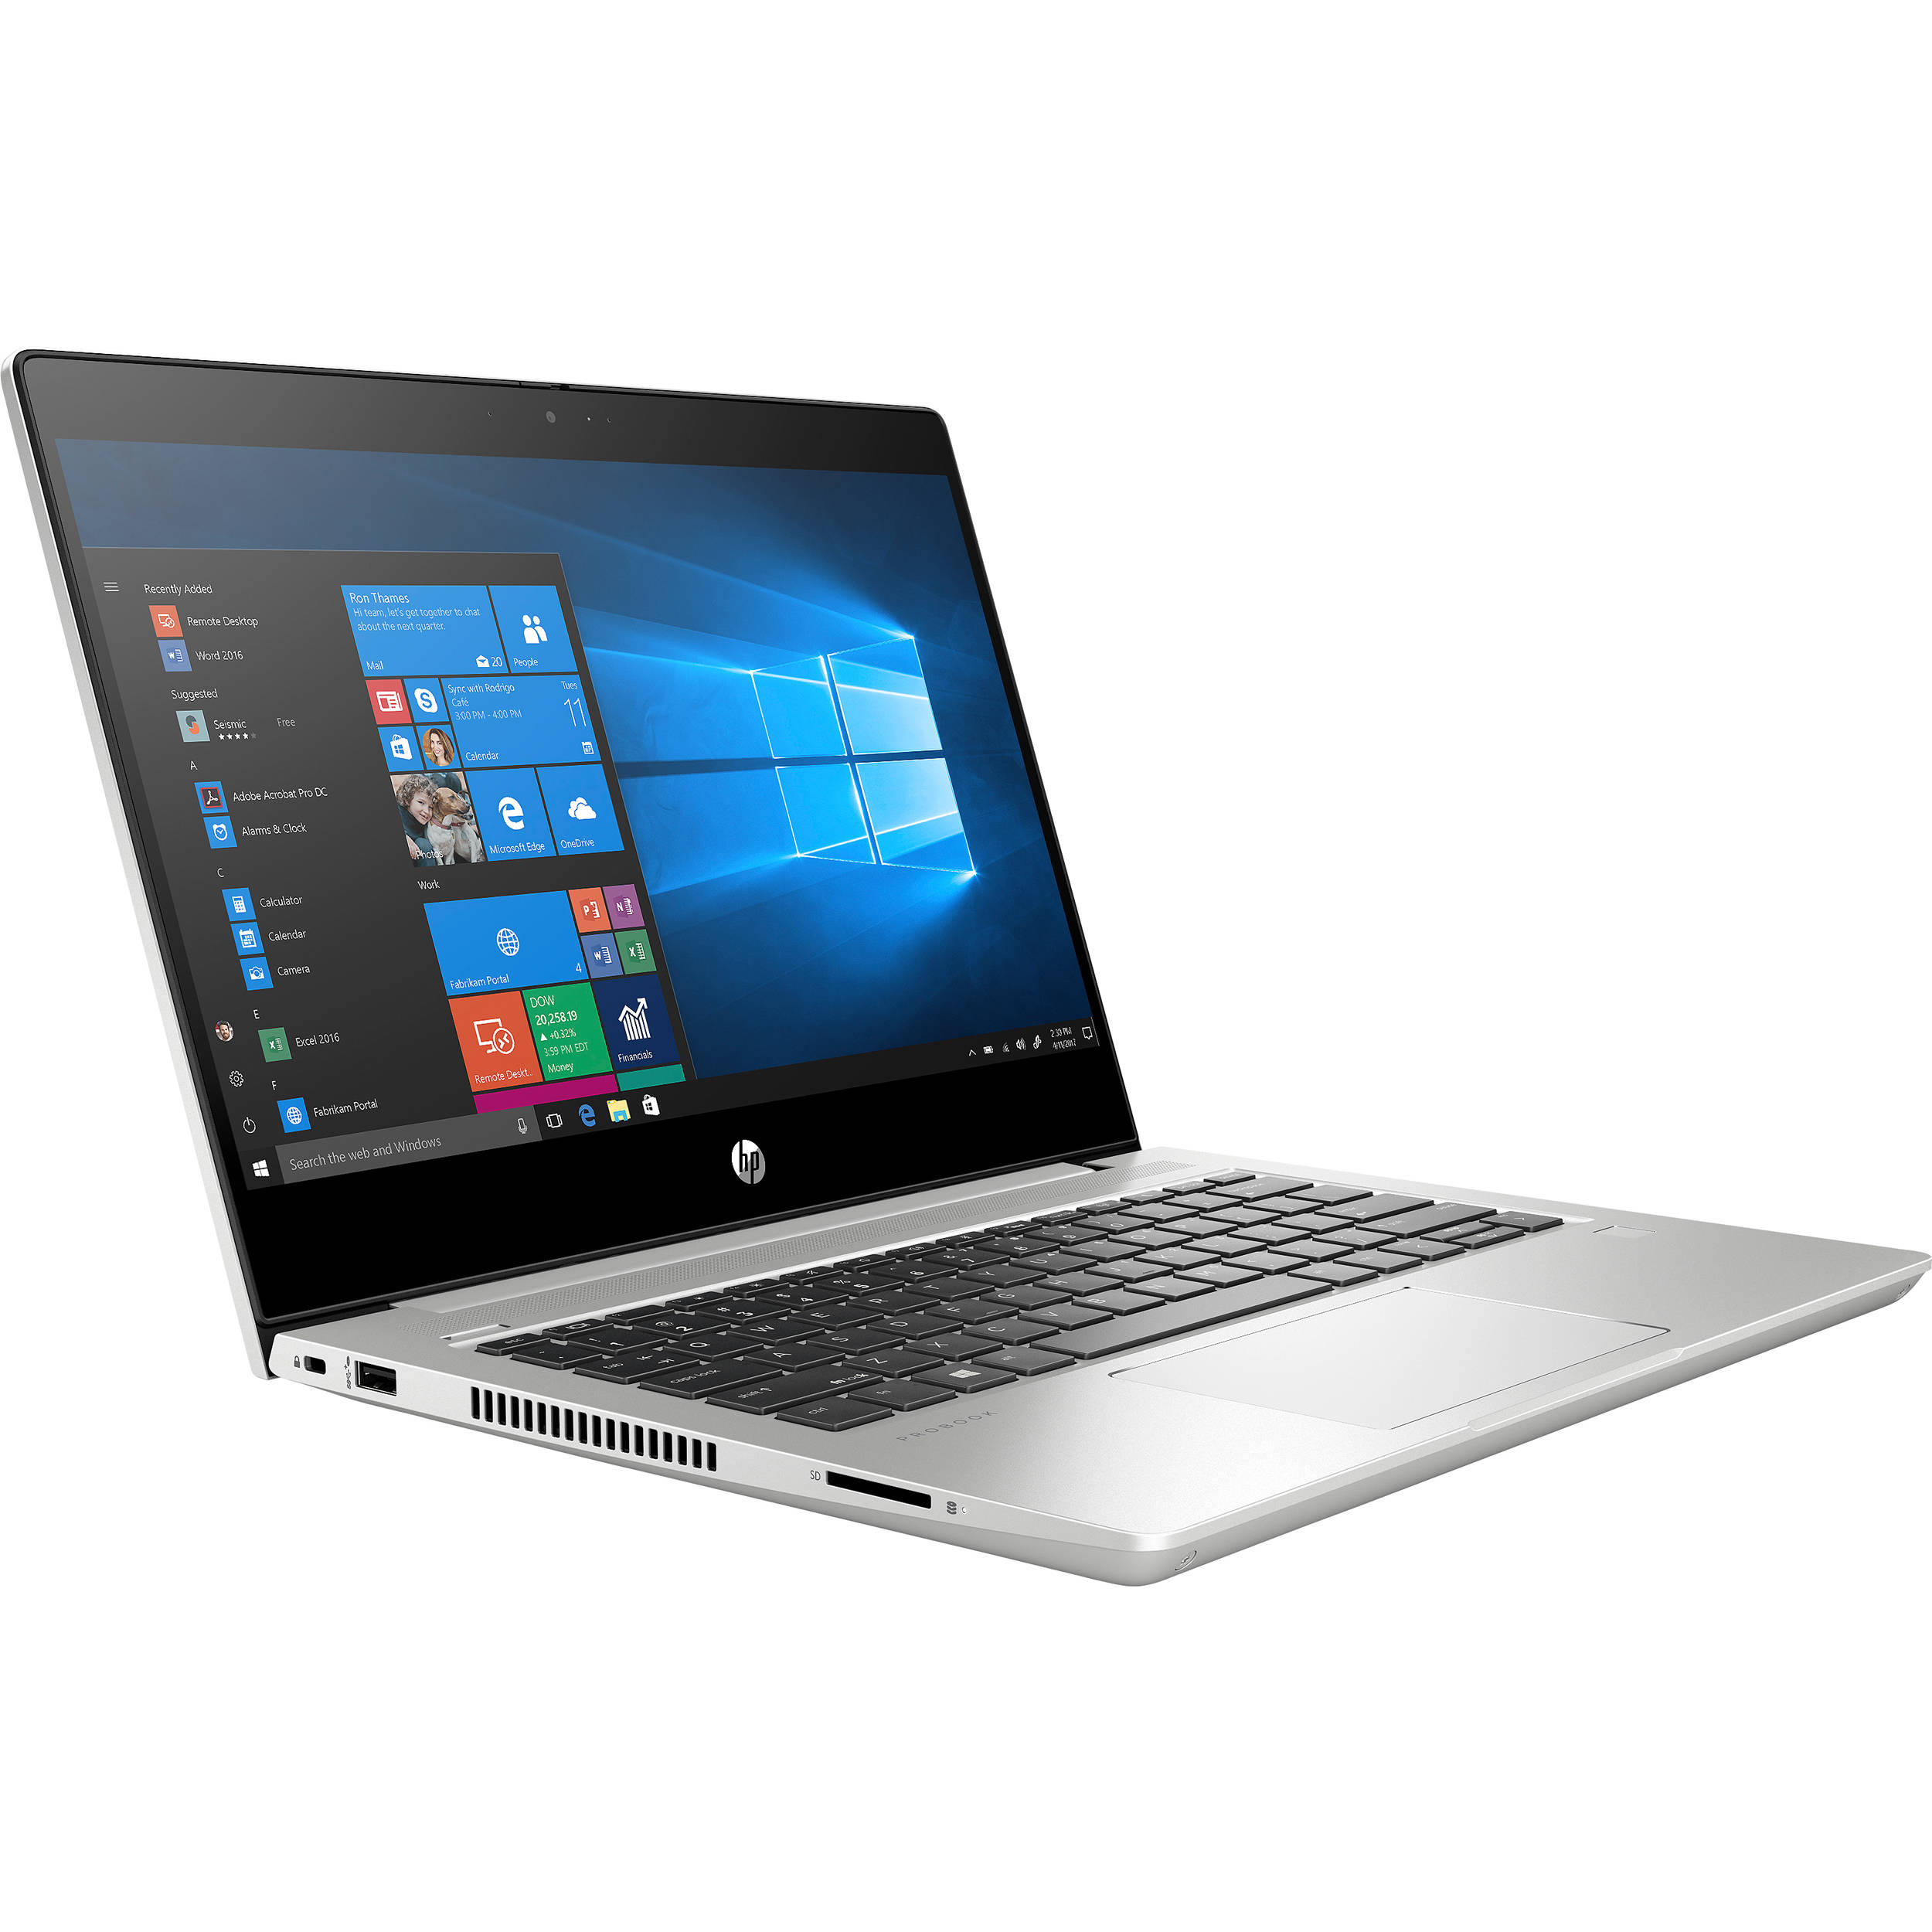 HP Probook 430 G7 13.3' HD i5-10210U 8GB 256GB SSD WIN10 HOME UHDGraphics USB-C HDMI Backlit KB  3CELL 1.49kg 1YR ONSITE  W10H Notebook (9WC57PA)